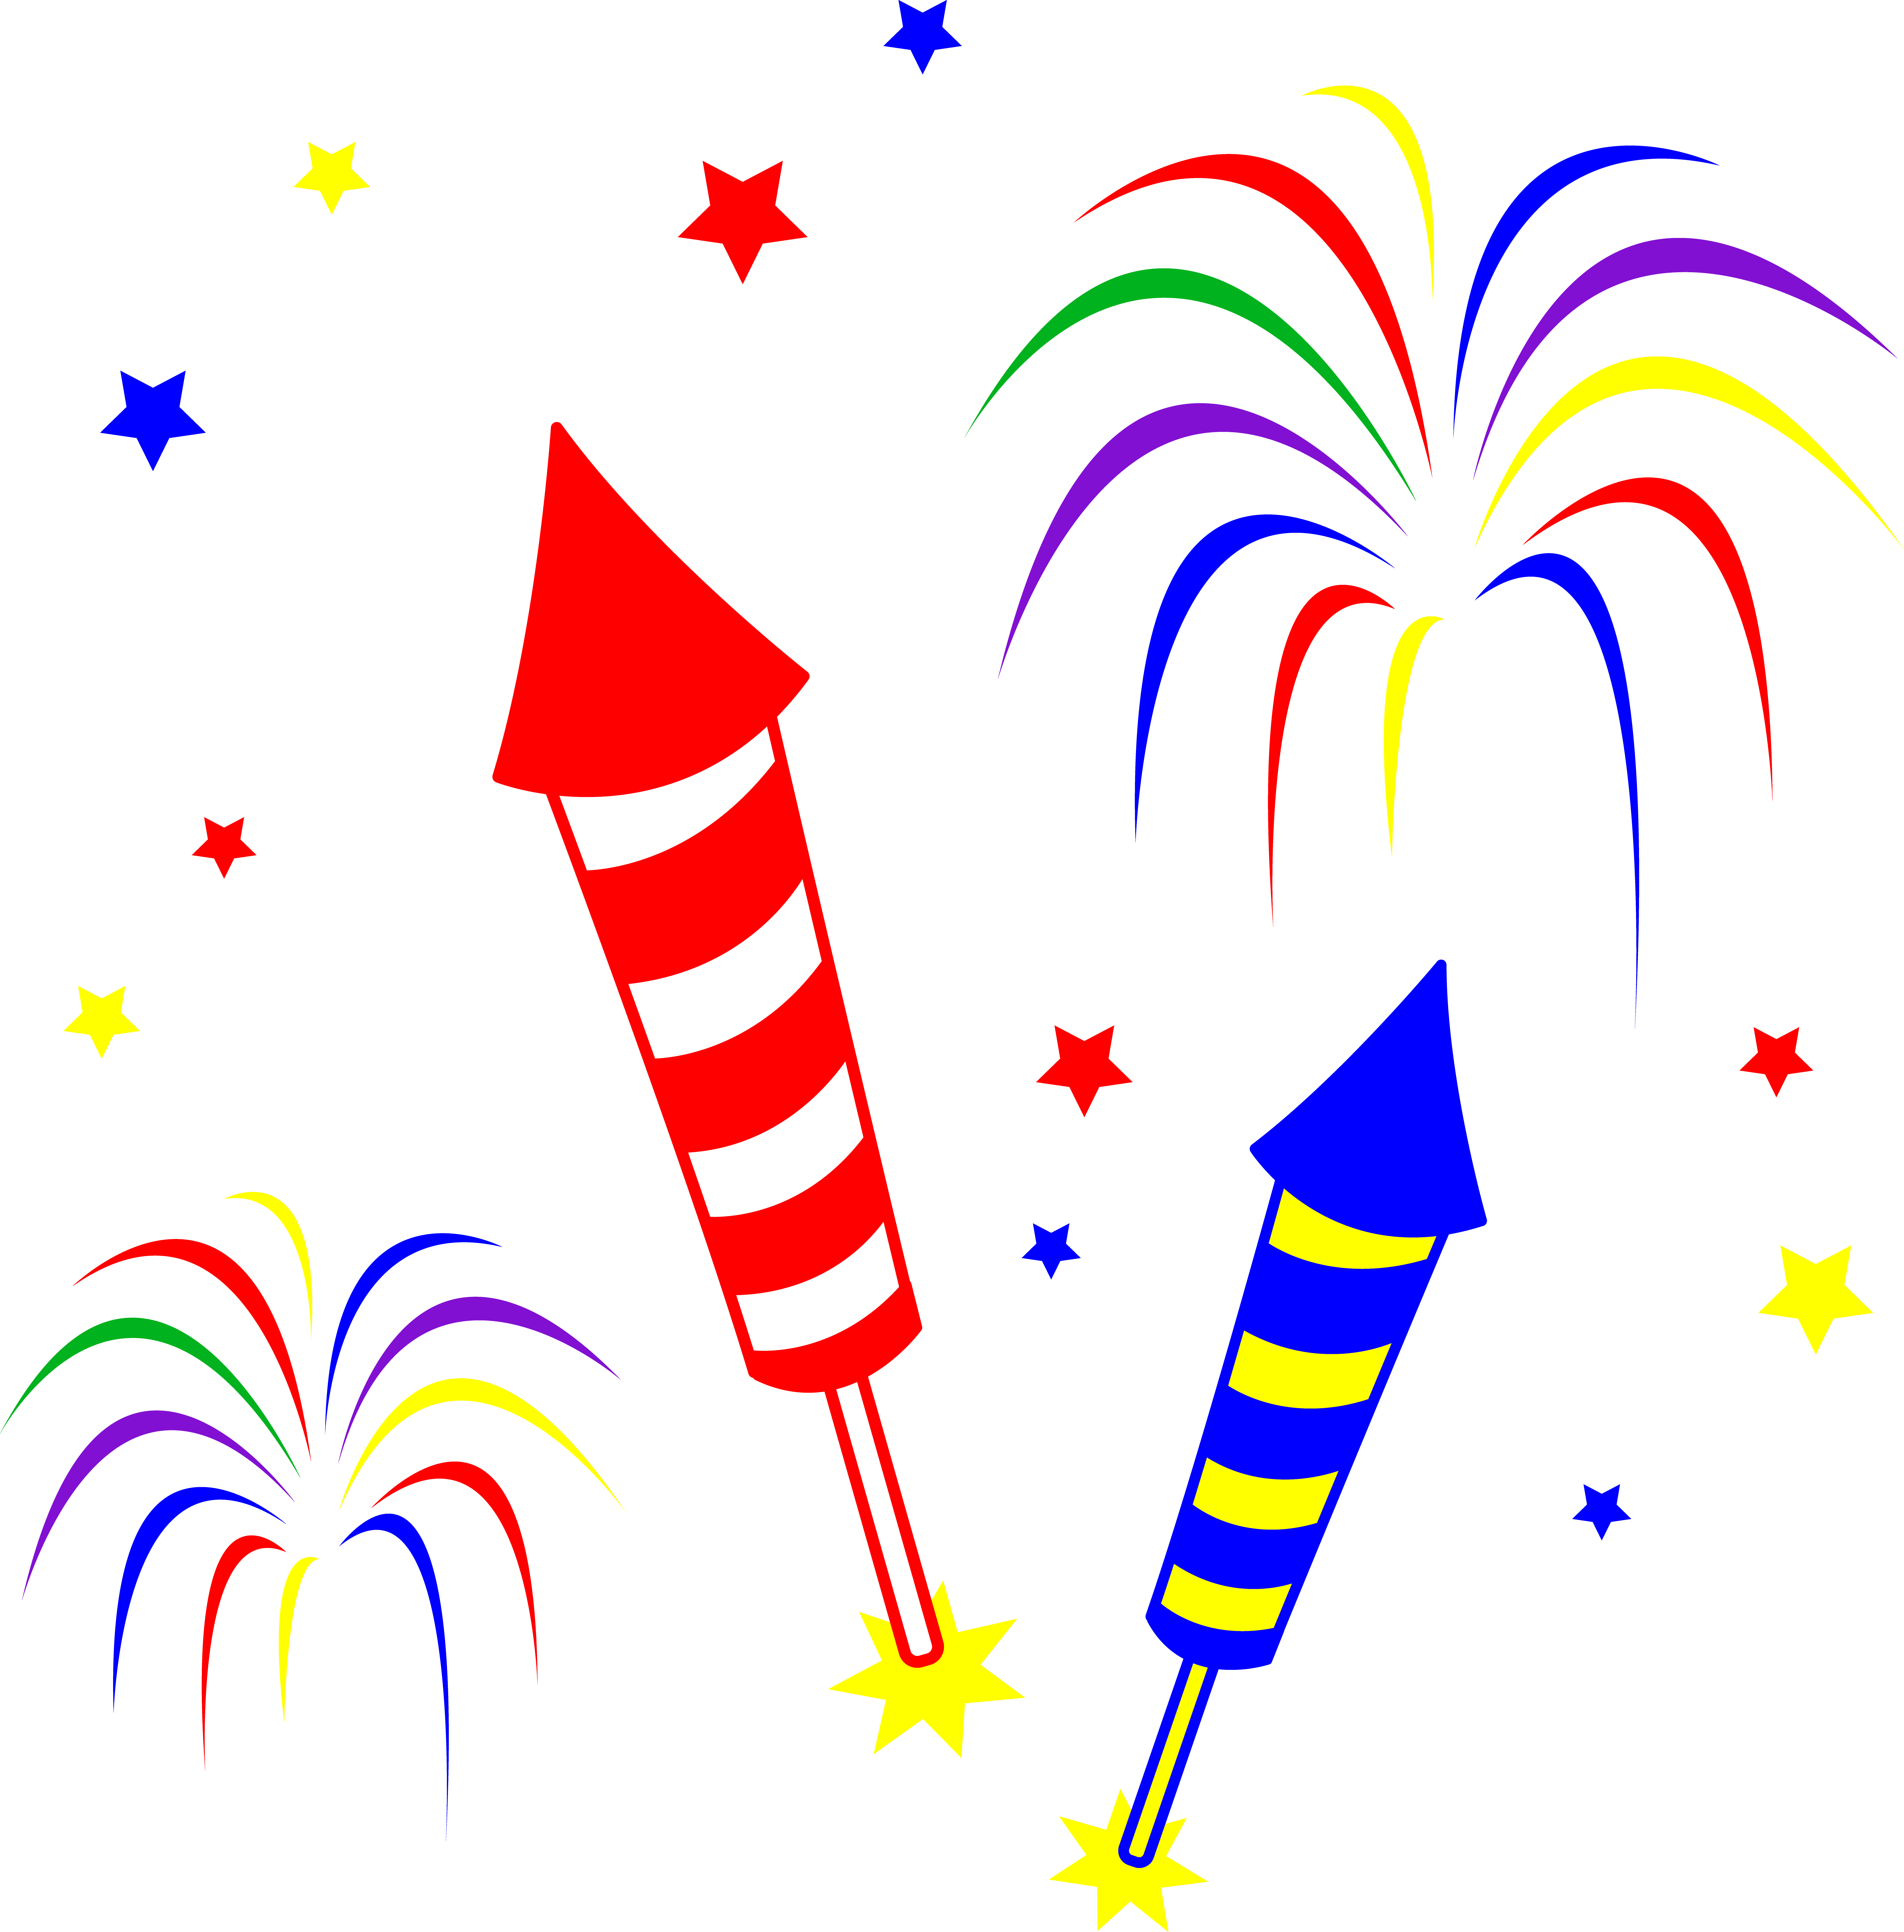 Fireworks Clip Art Animated Free | Clipart Panda - Free Clipart Images